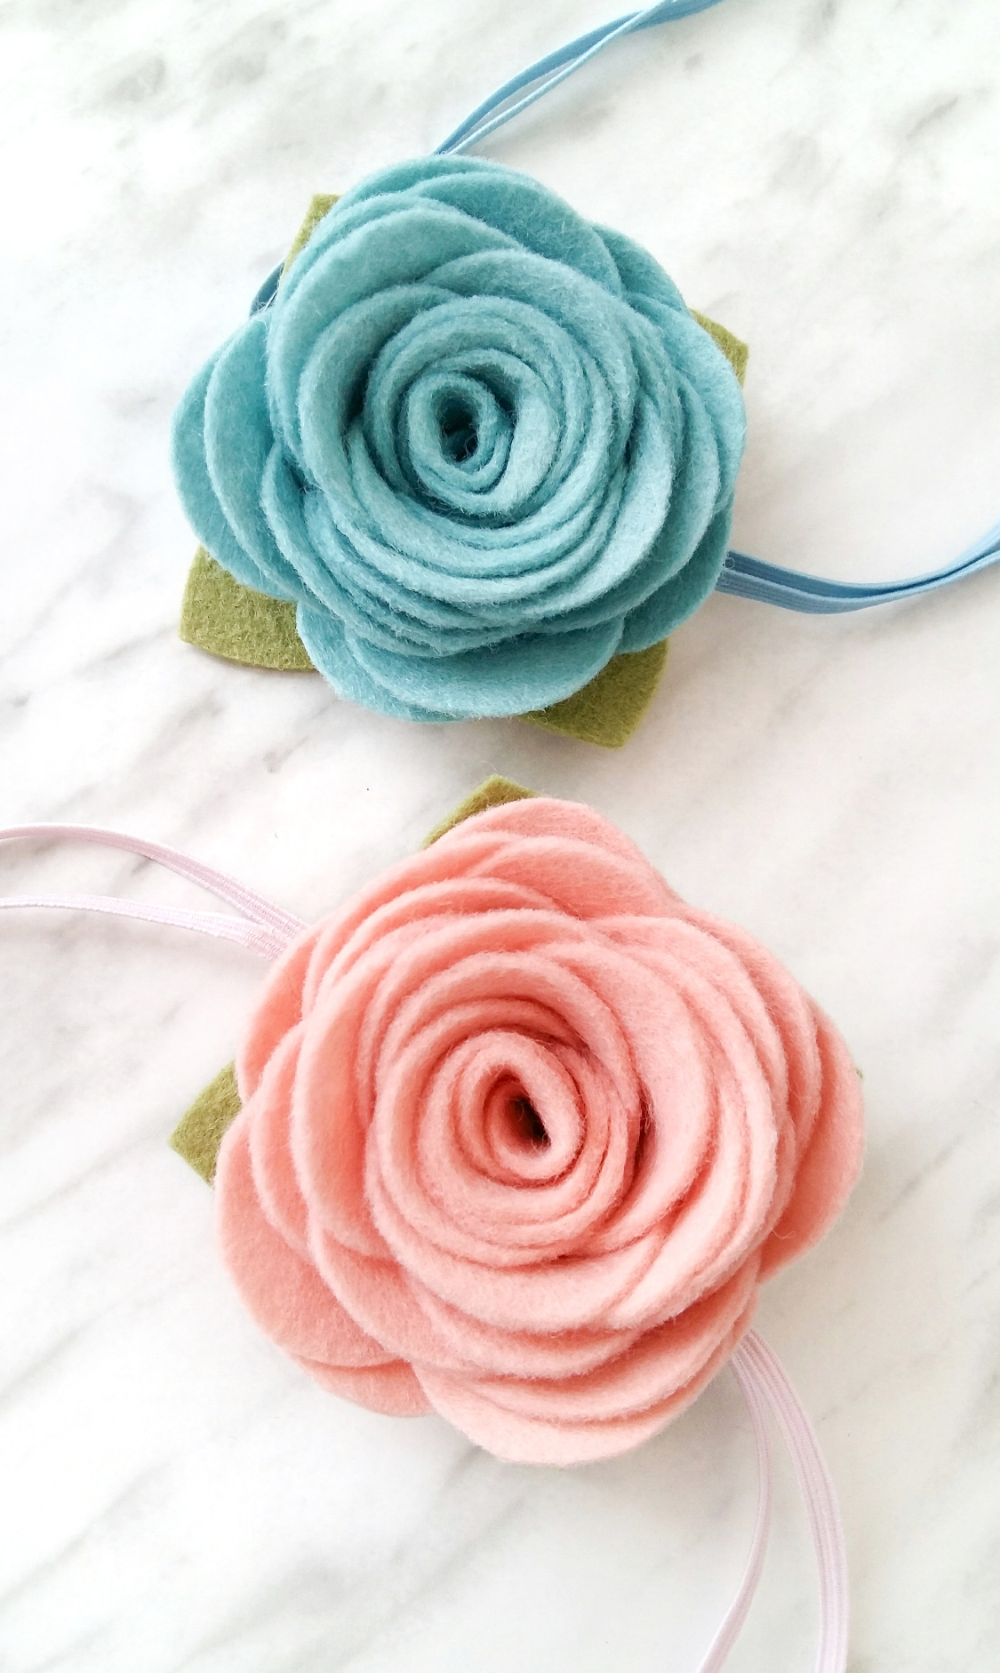 How to Make Felt Flowers - with free printable pattern!   Wildflower Felt Designs